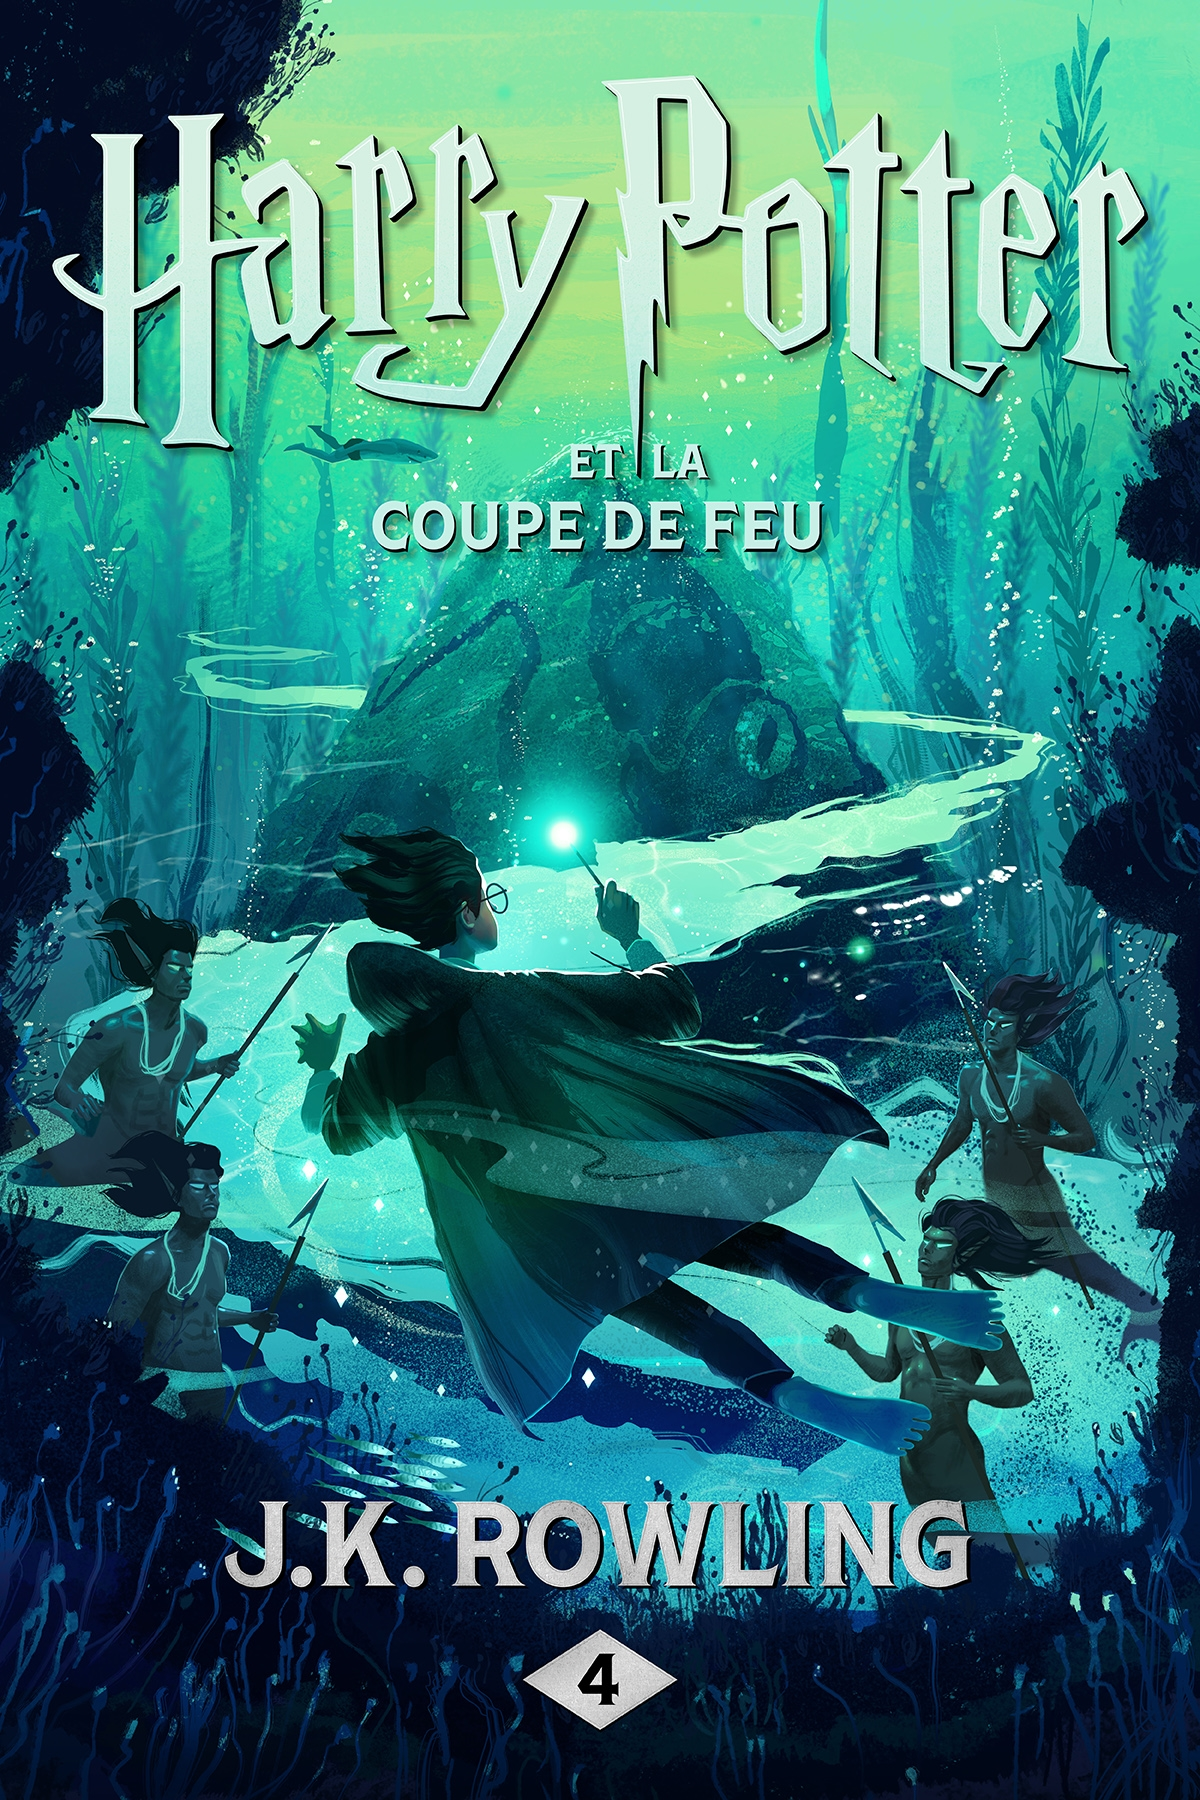 Harry Potter T.4 : Harry Potter et la Coupe de feu - J.K. Rowling